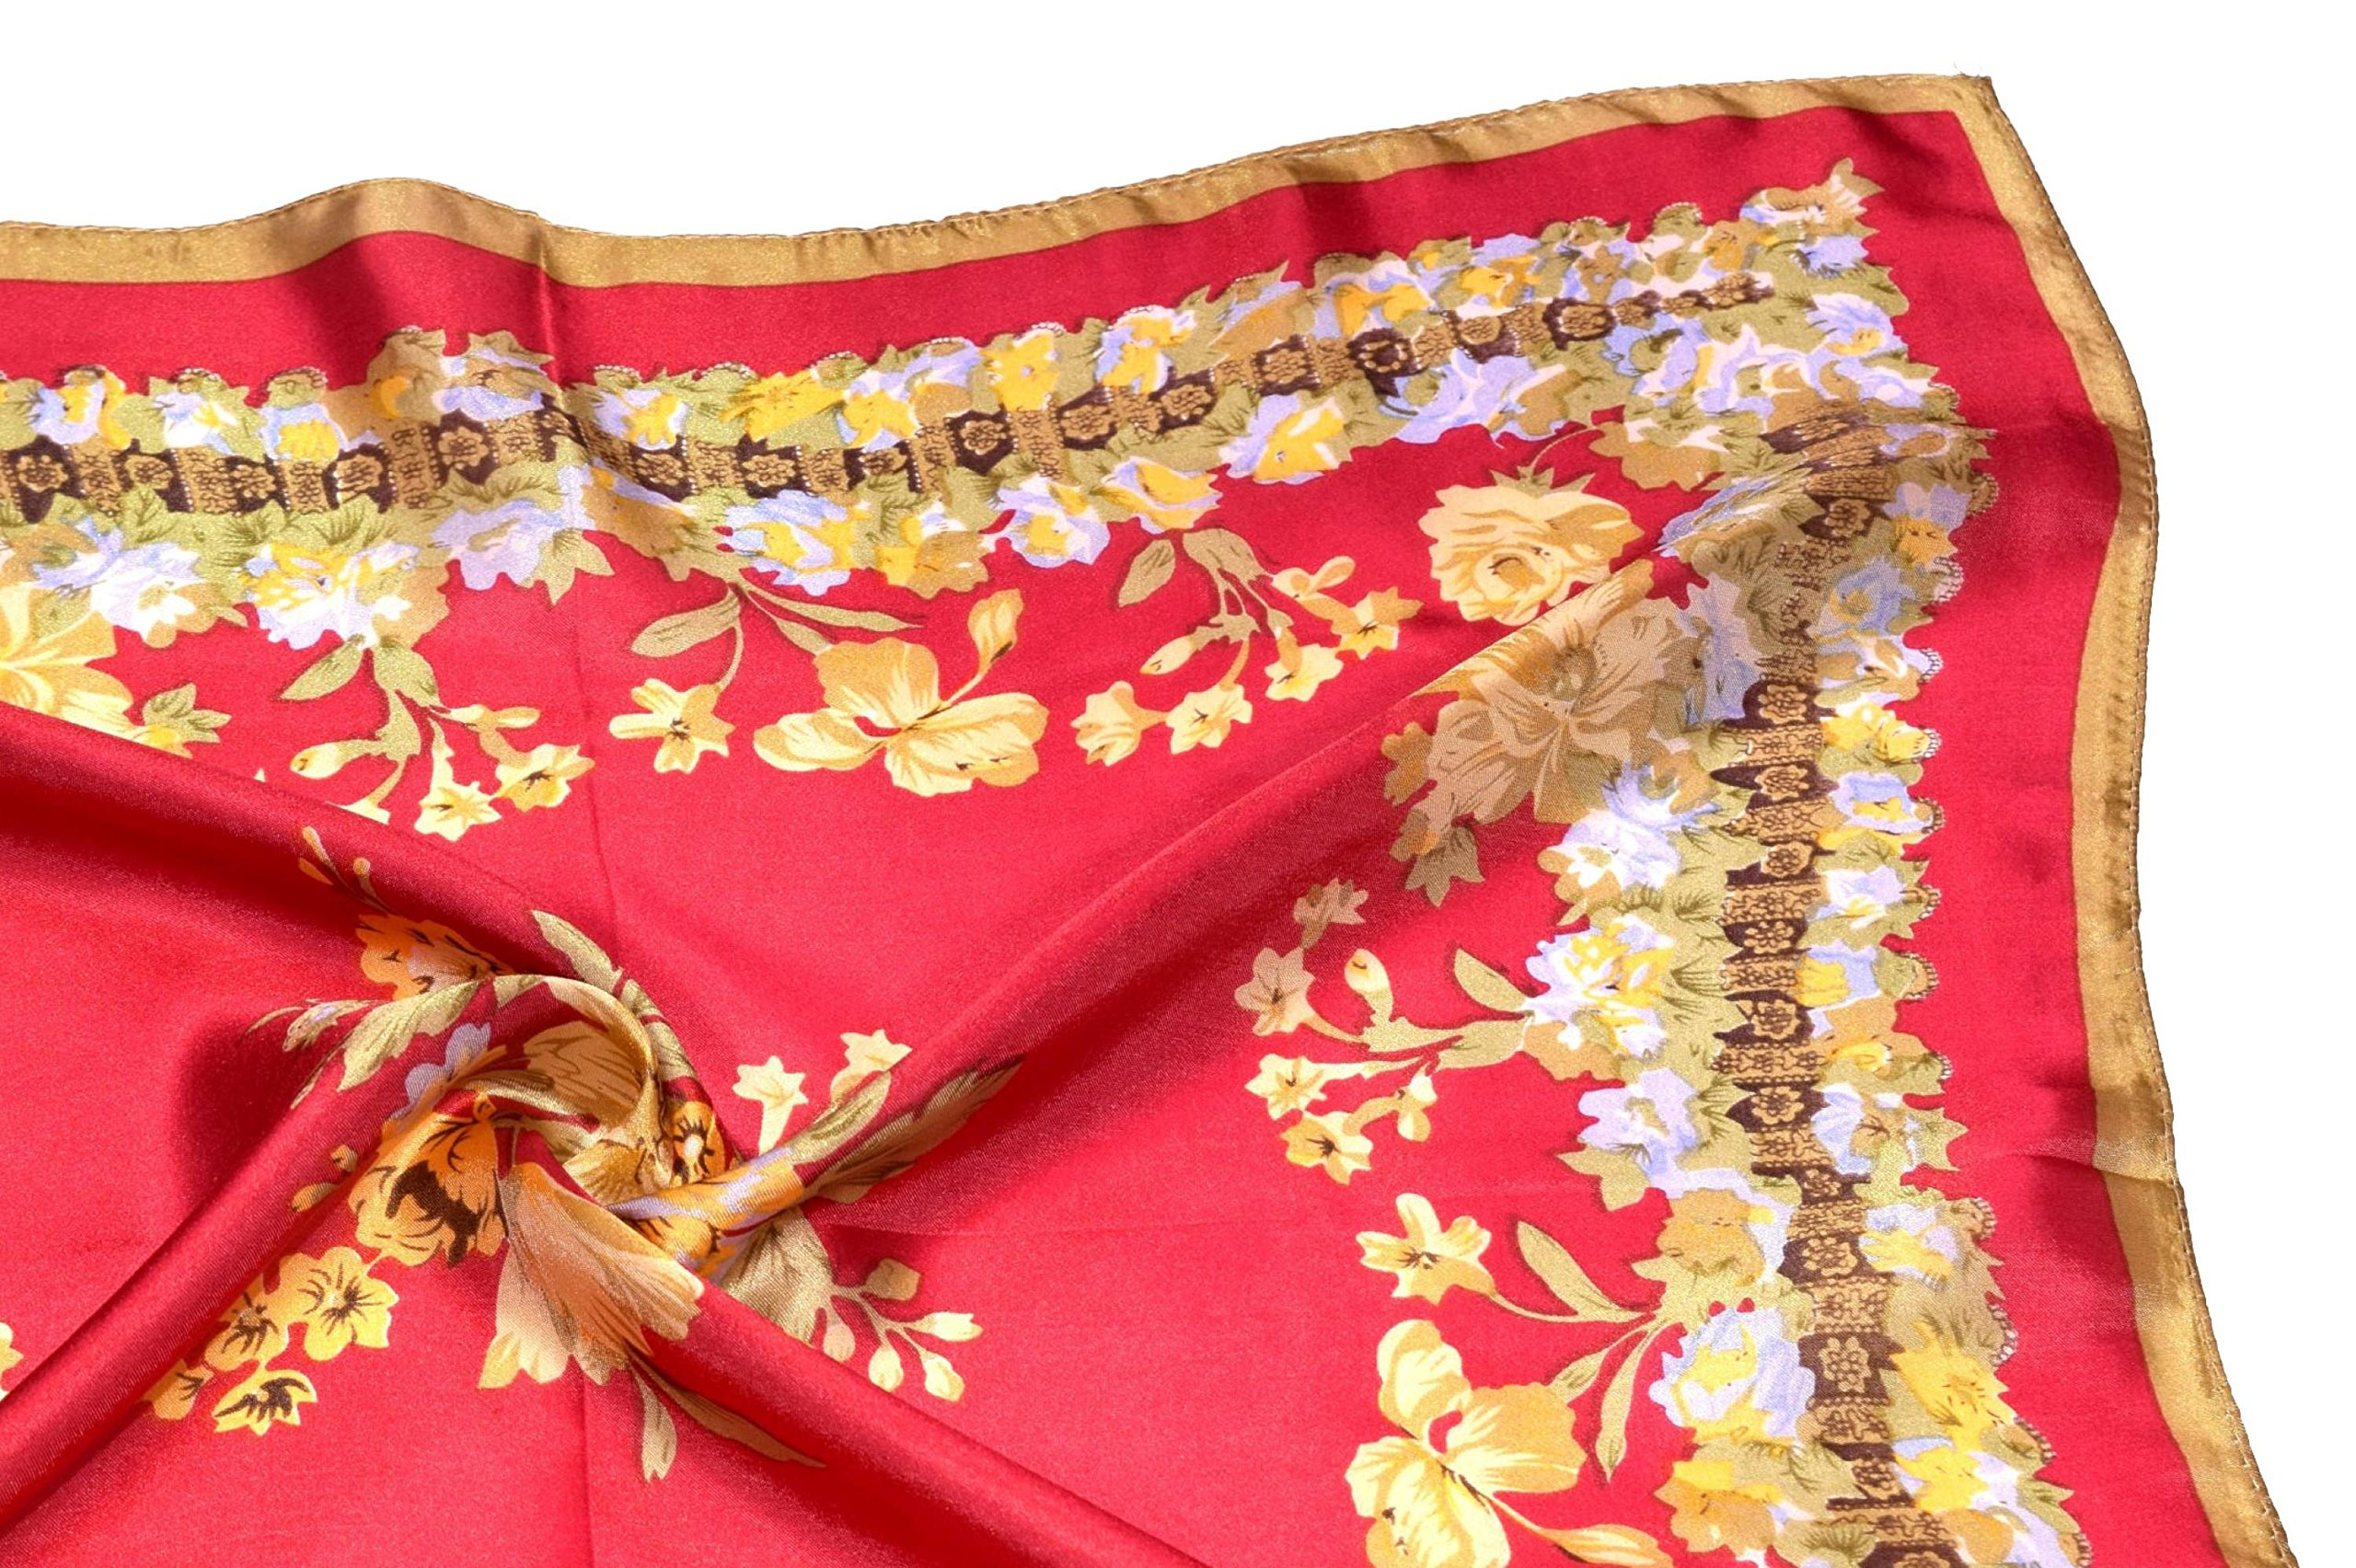 Red Yellow Flowers Printed Small Square Fine Silk Scarf by Bees Knees Fashion (Image #6)